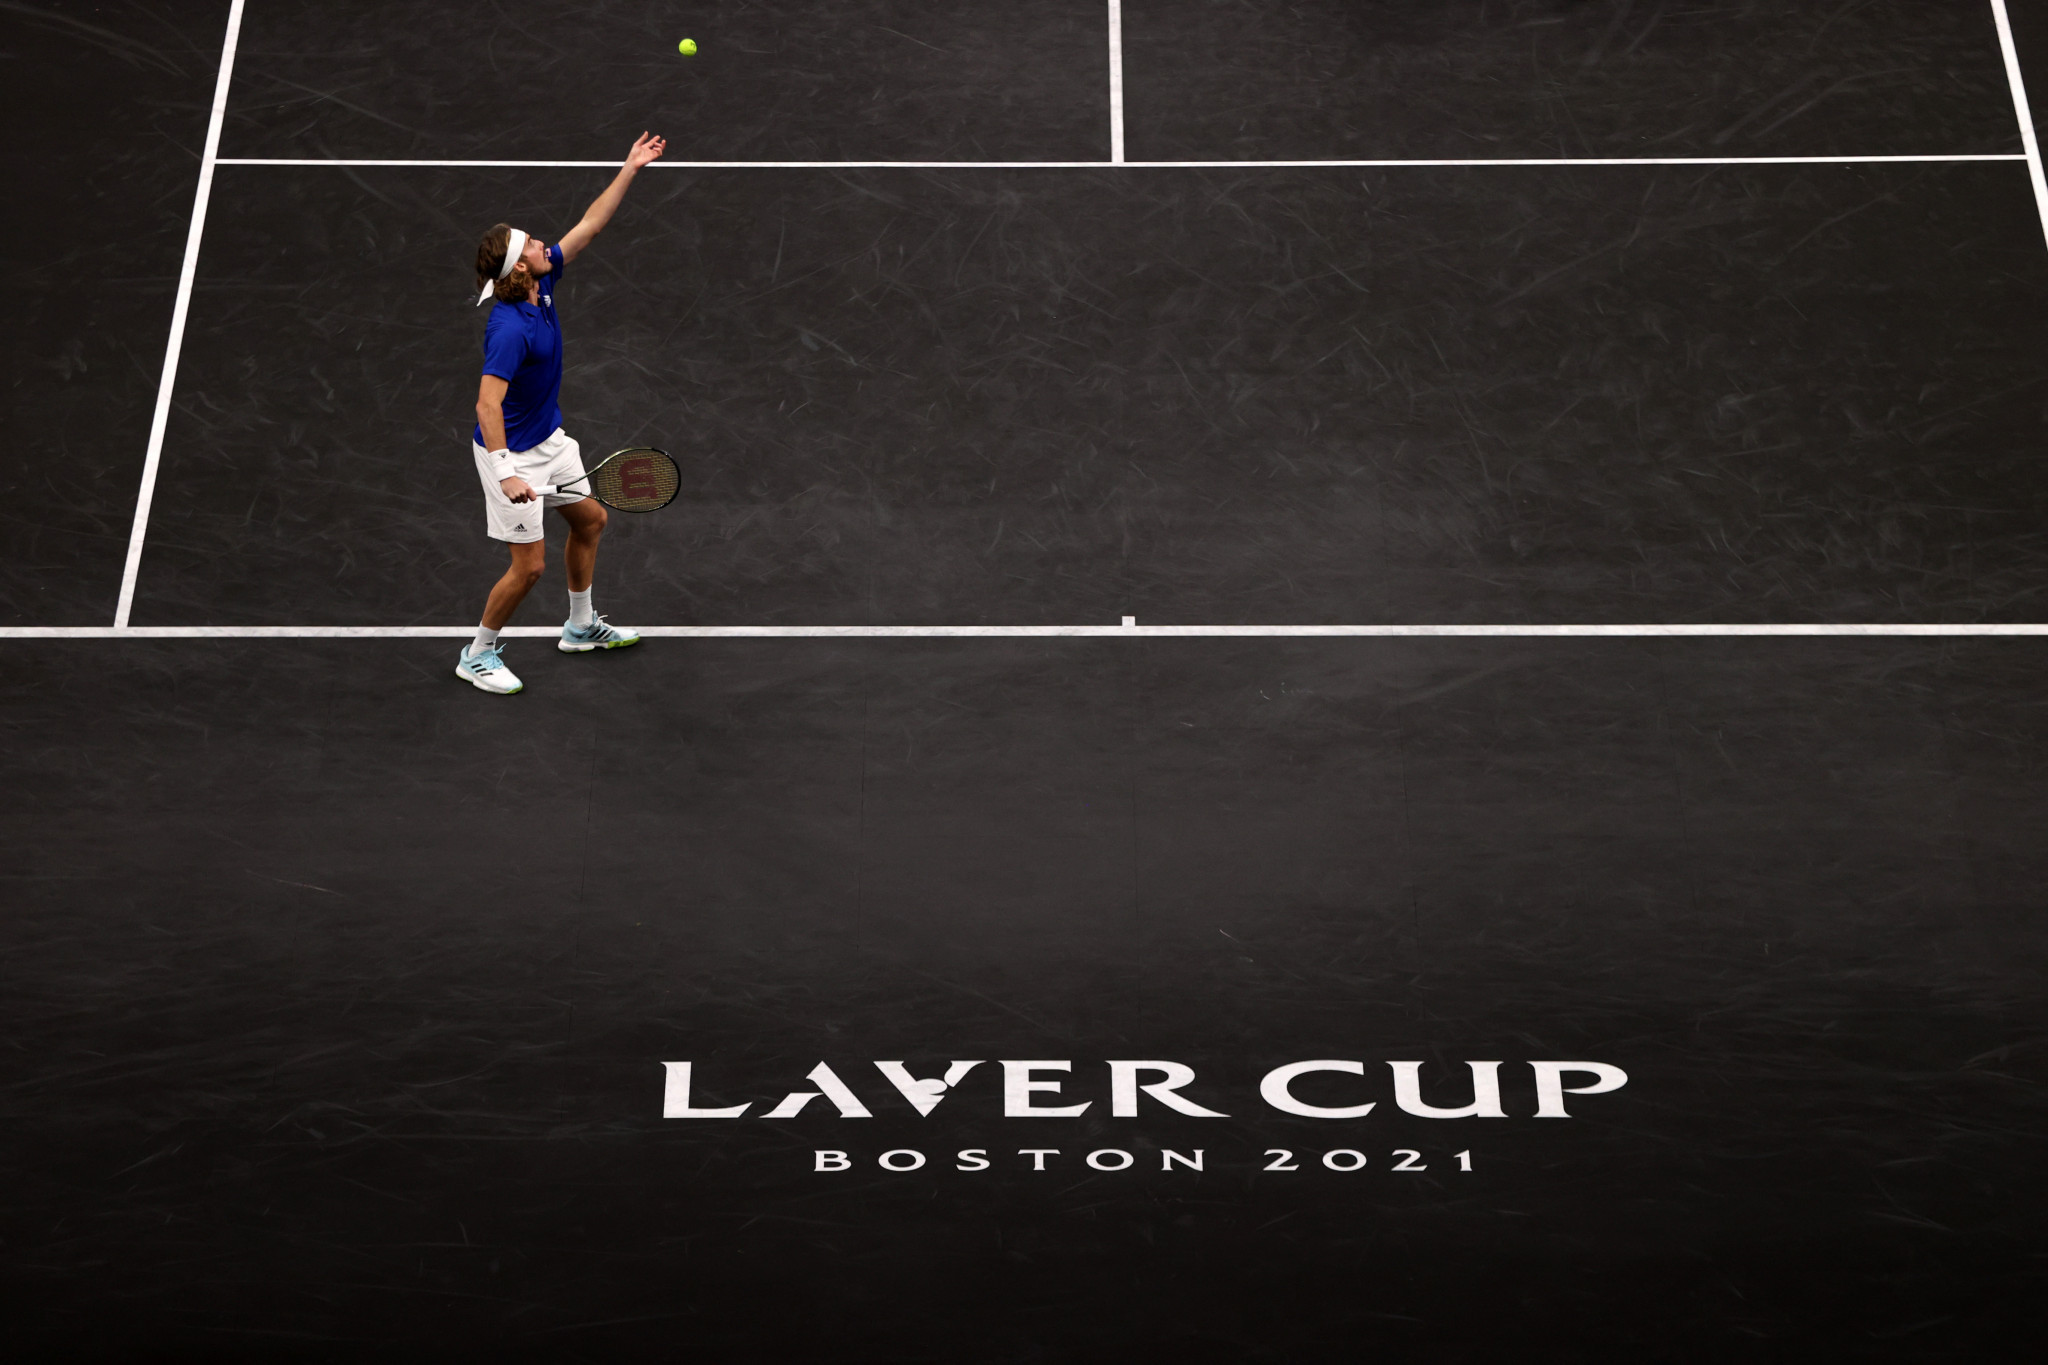 Europe move to brink of retaining Laver Cup after perfect second day